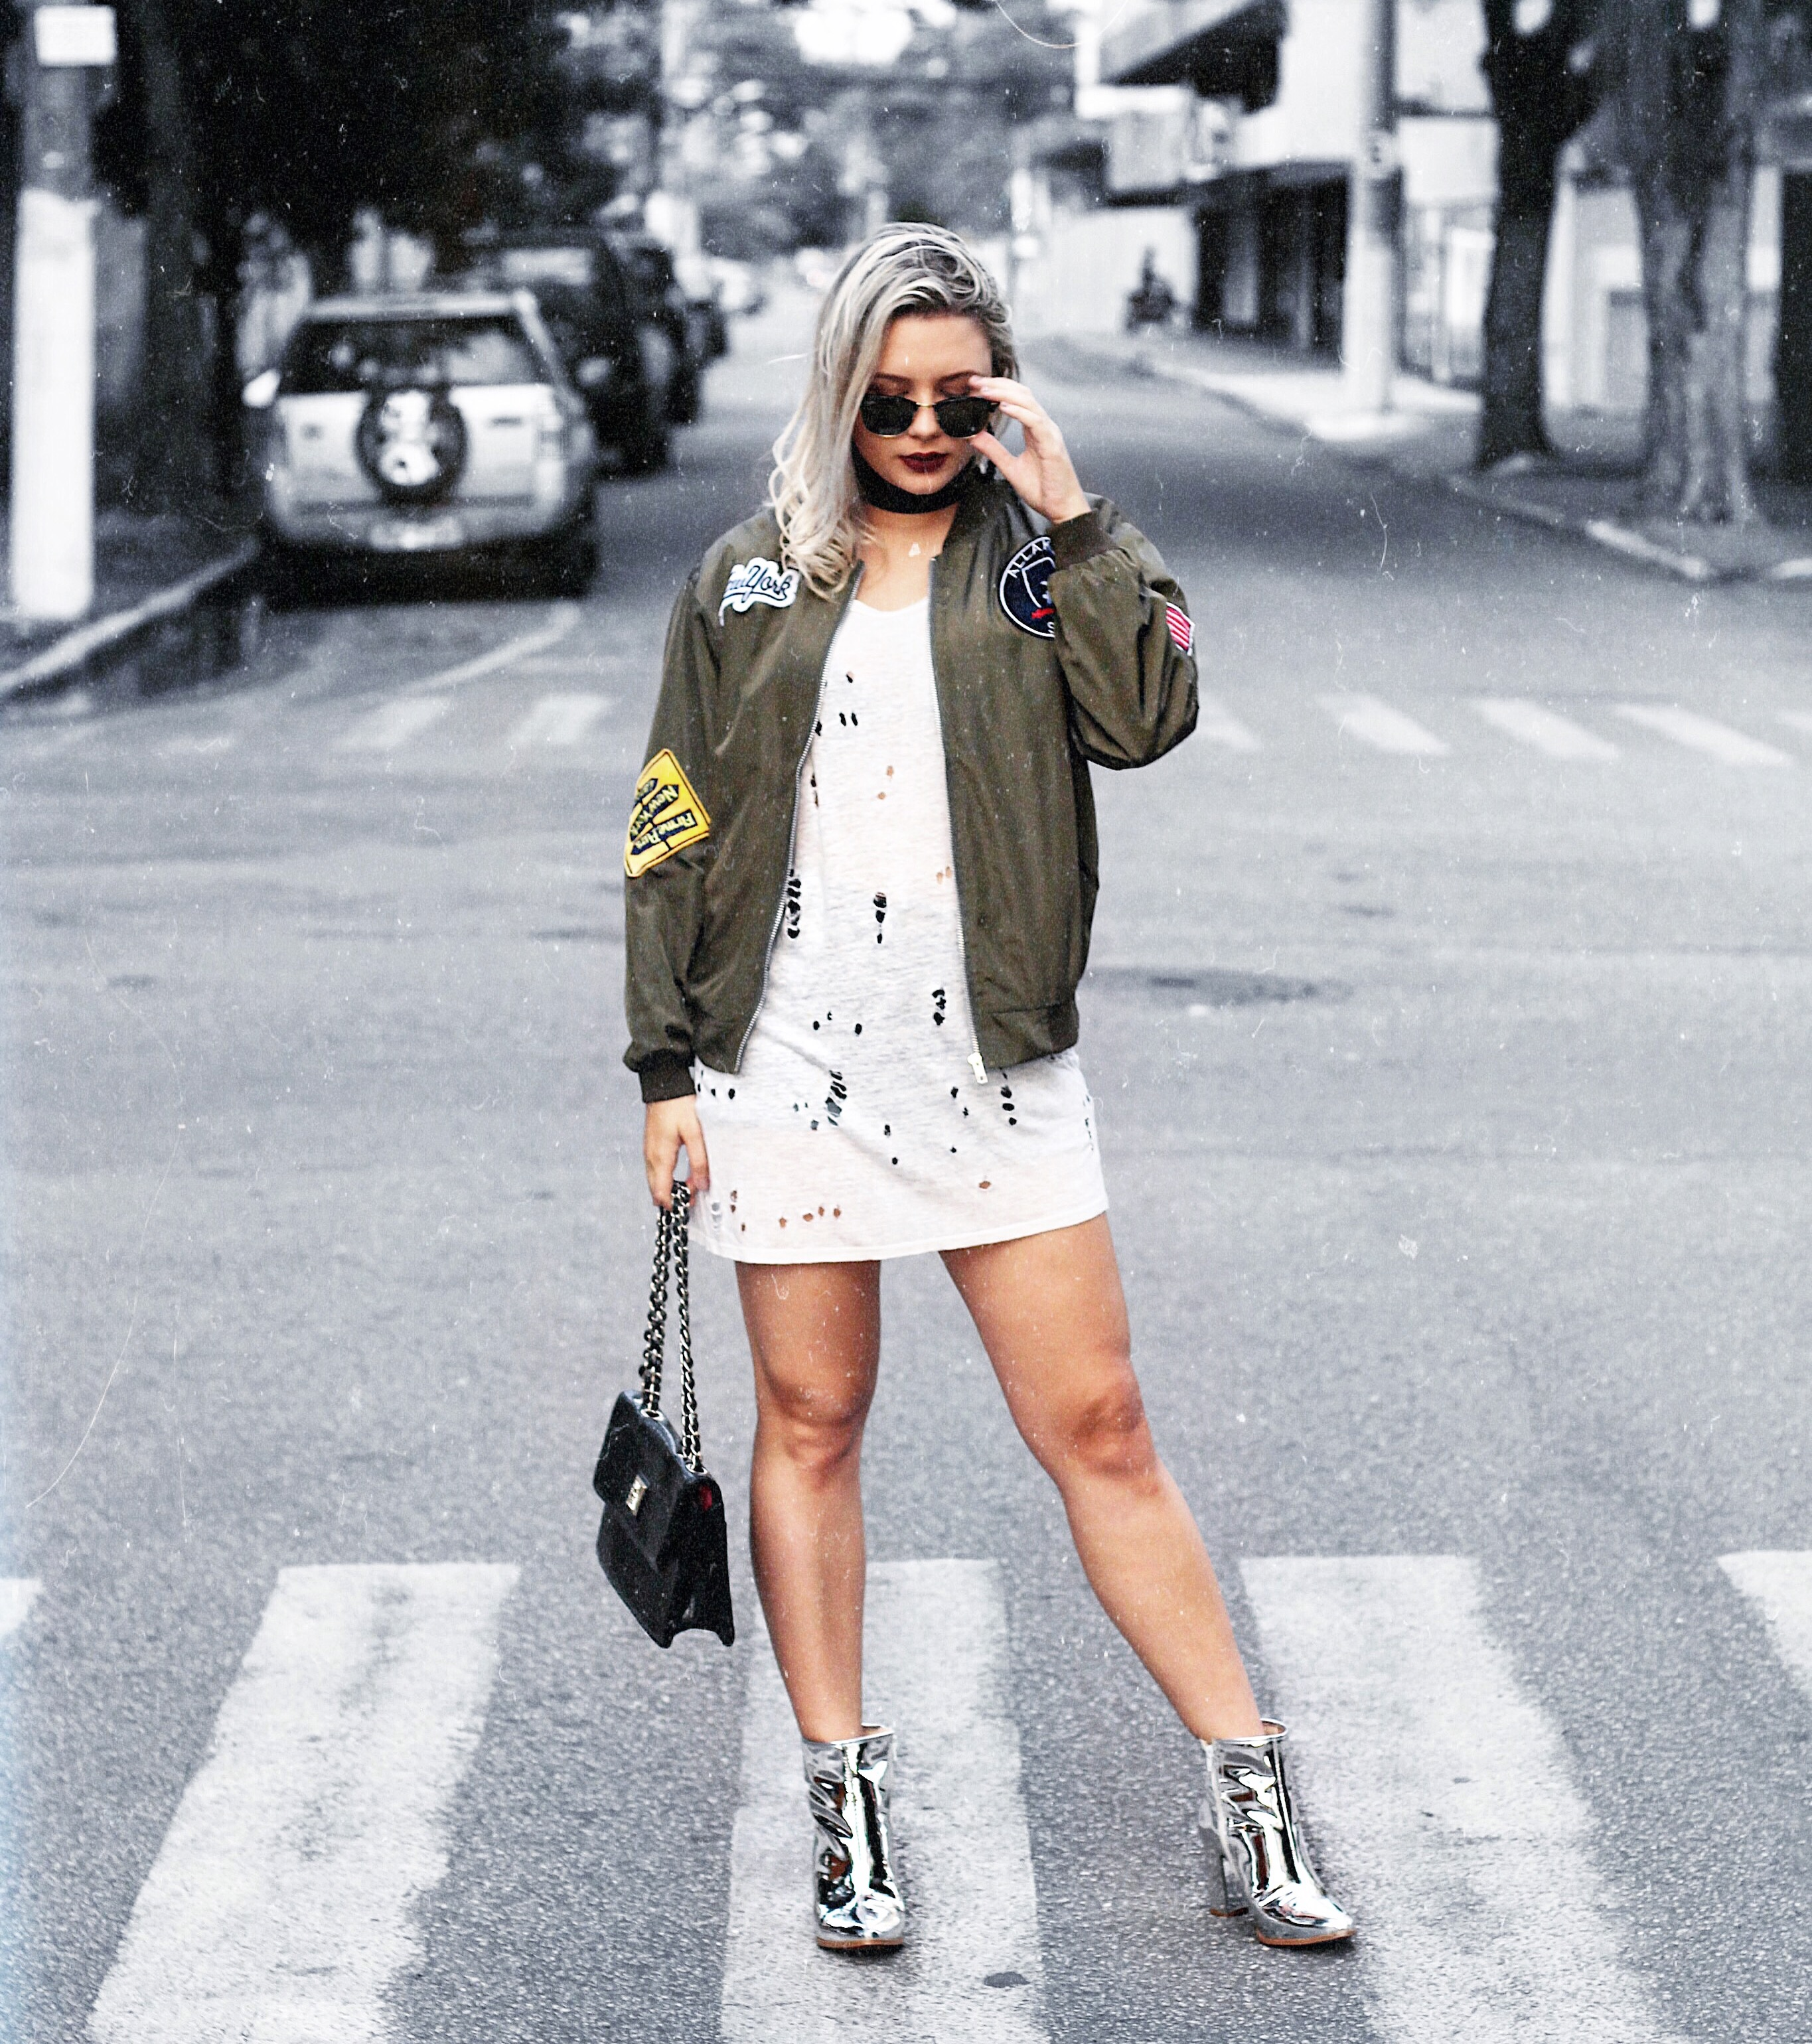 look 2 formal classico caroline hernandes romwe compre na china  jaqueta militar look do dia 2